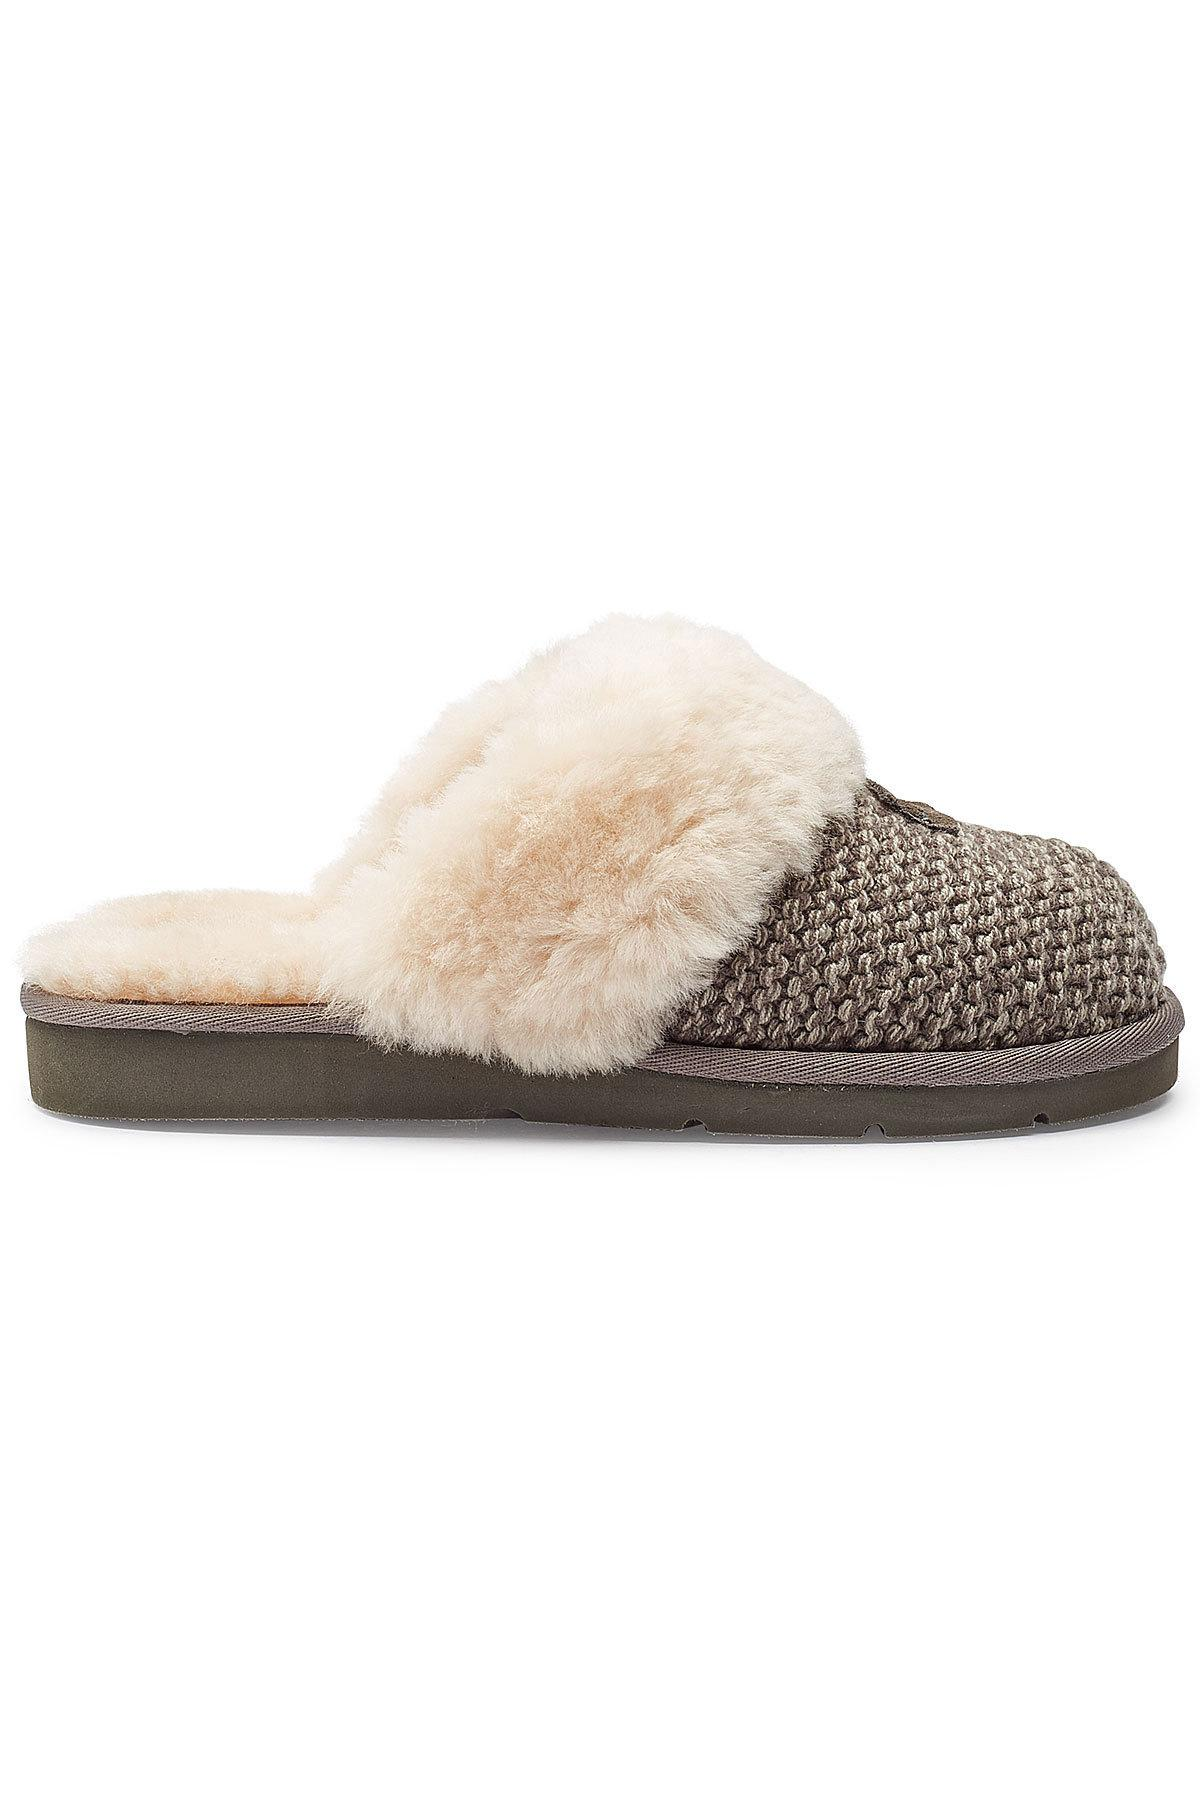 06f4cfddf35 Ugg - Multicolor Cozy Knit Cable Slippers With Sheepskin - Lyst. View  fullscreen